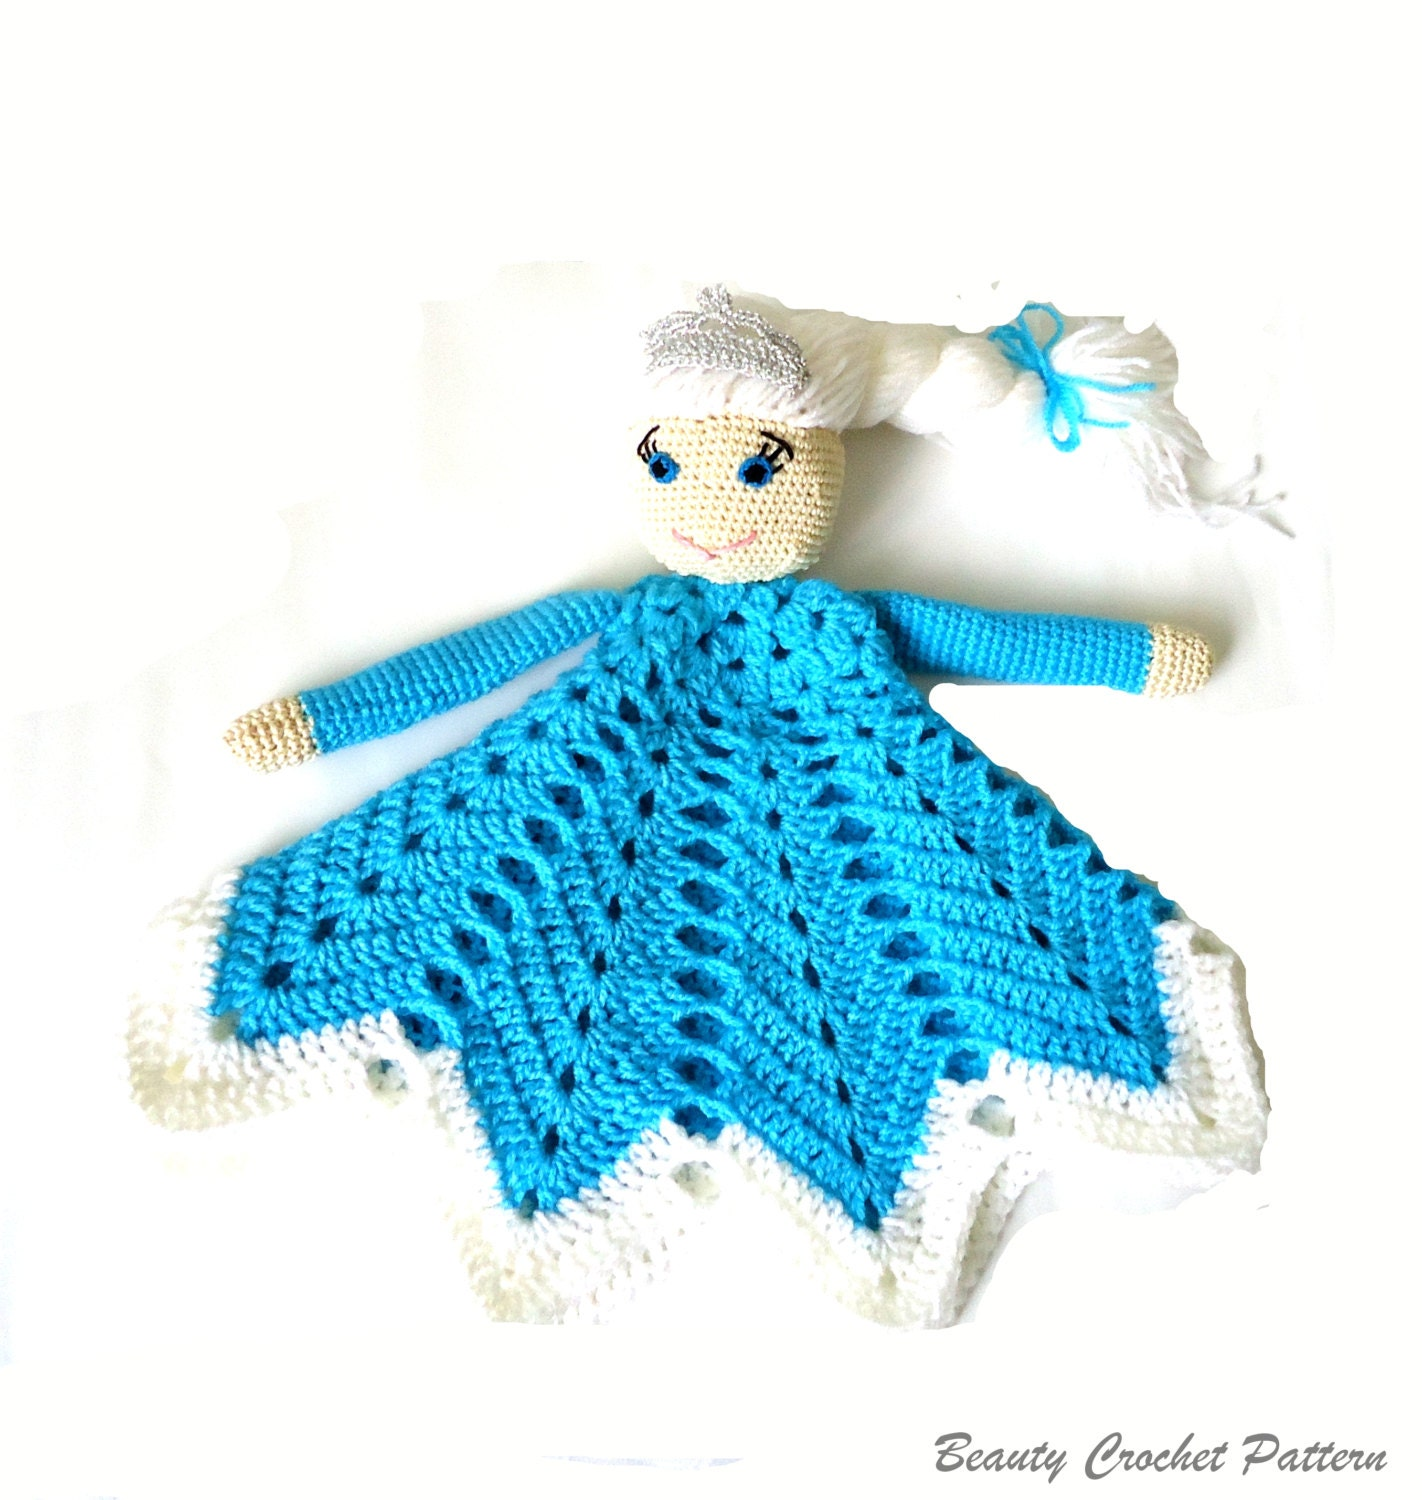 Free Crochet Patterns For Baby Loafers : Crochet Lovey Pattern Ice Queen Baby Security Blanket